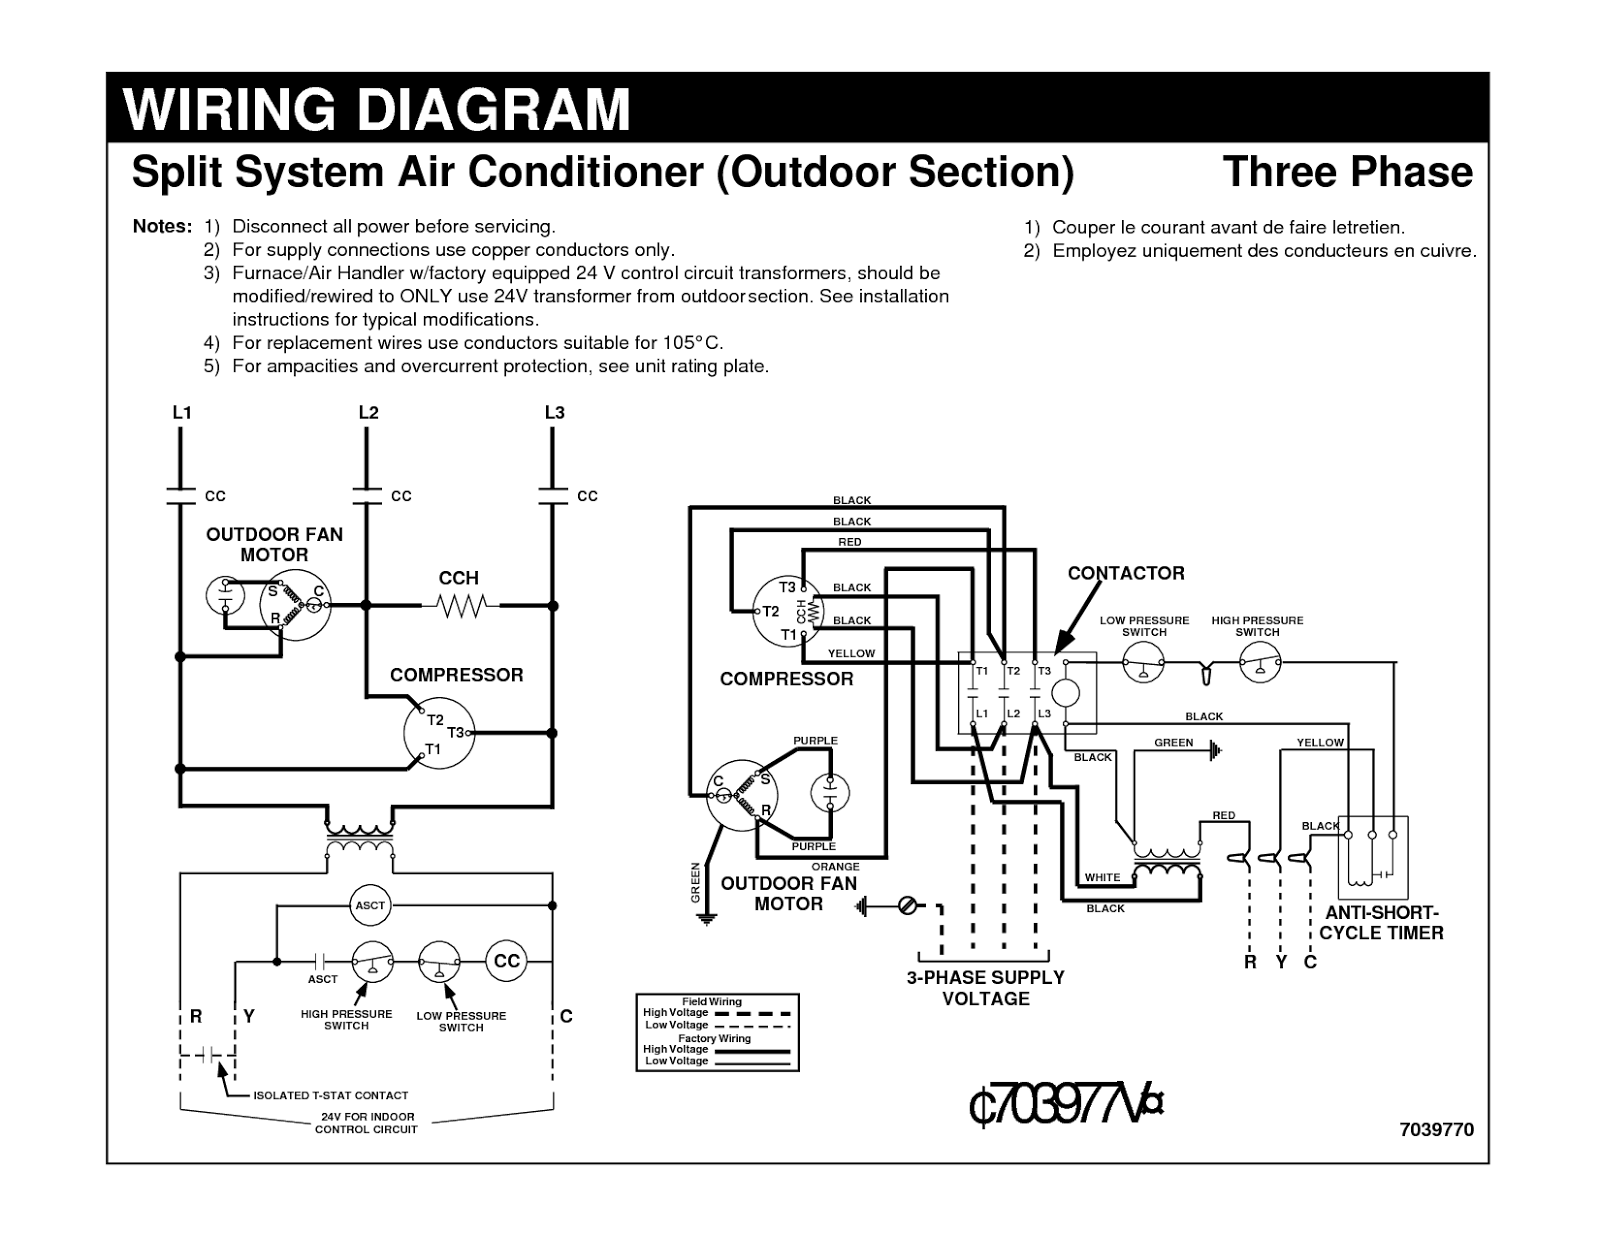 wiring+diagram+in+the+user+manual hvac wiring diagram pdf hvac definitions pdf \u2022 free wiring window air conditioner wiring diagram pdf at eliteediting.co